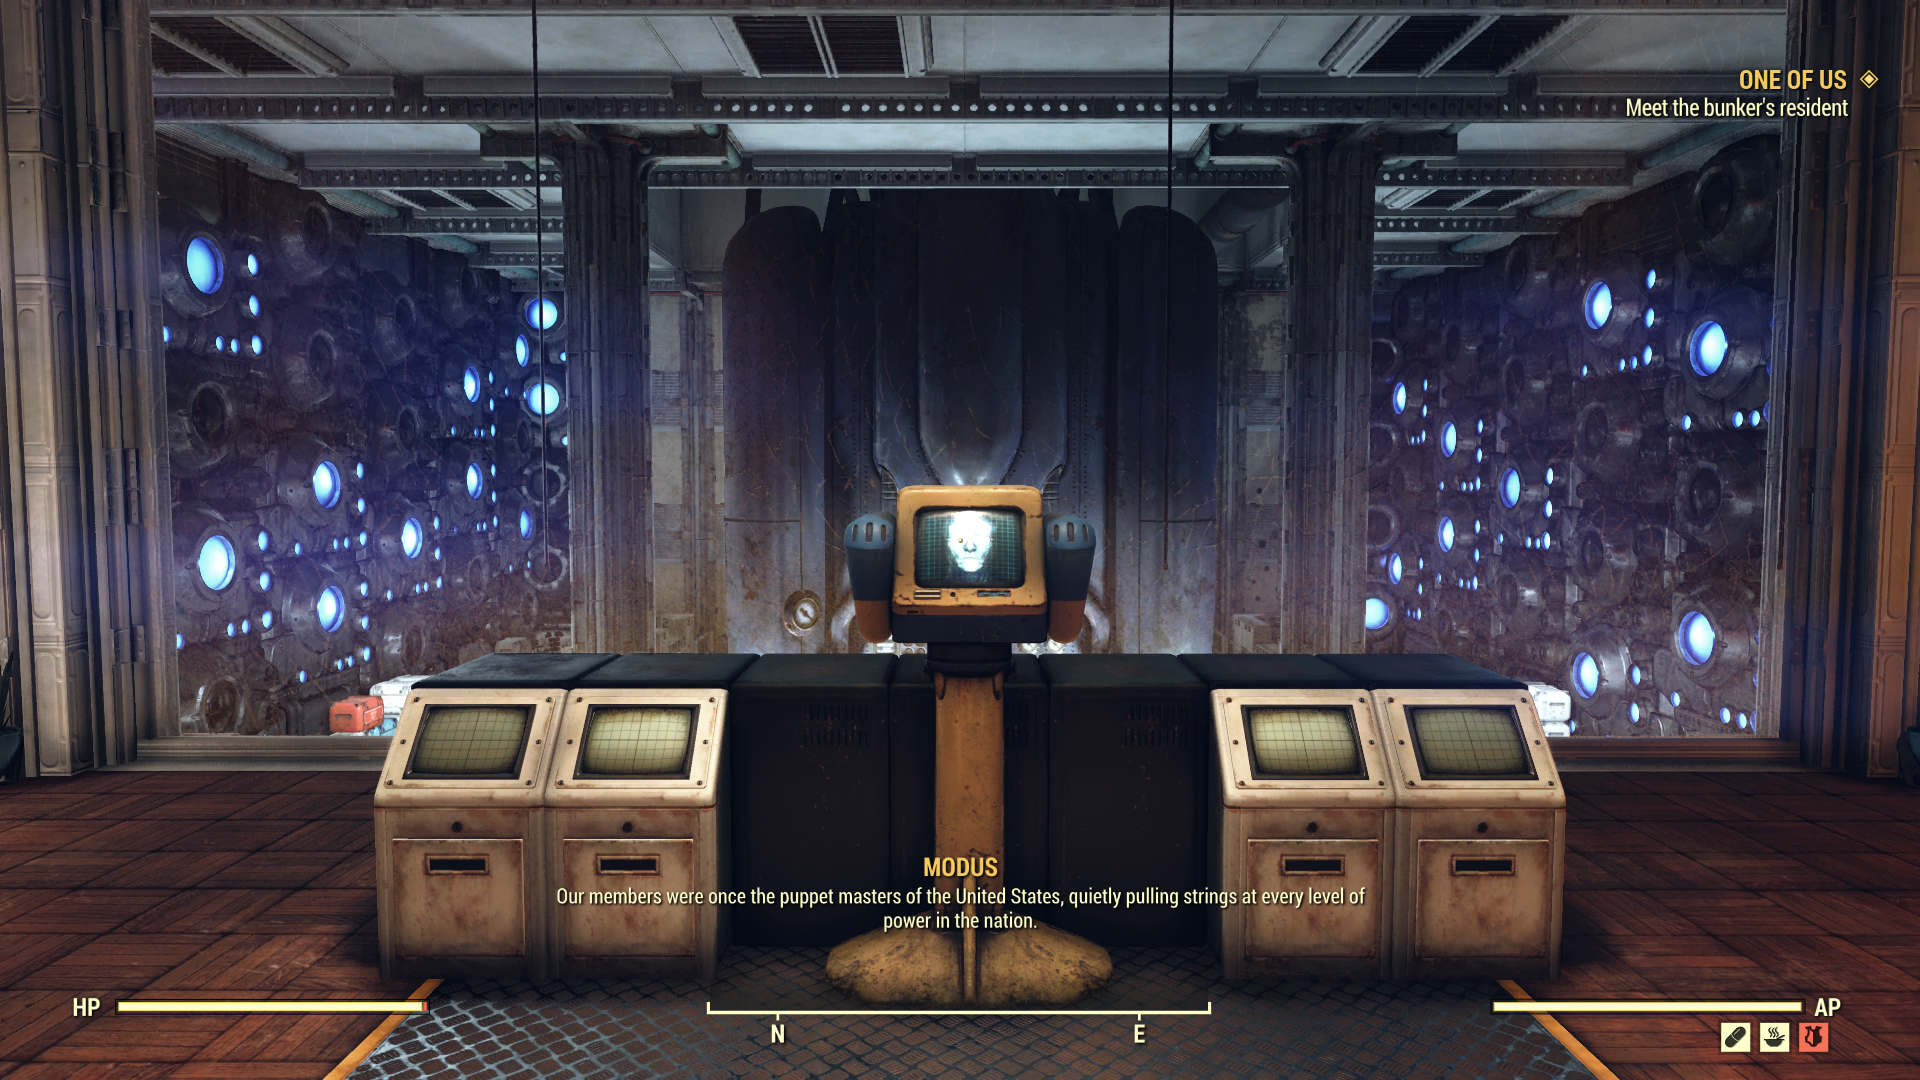 Fallout 76 nuke codes: how to get launch codes in Fallout 76